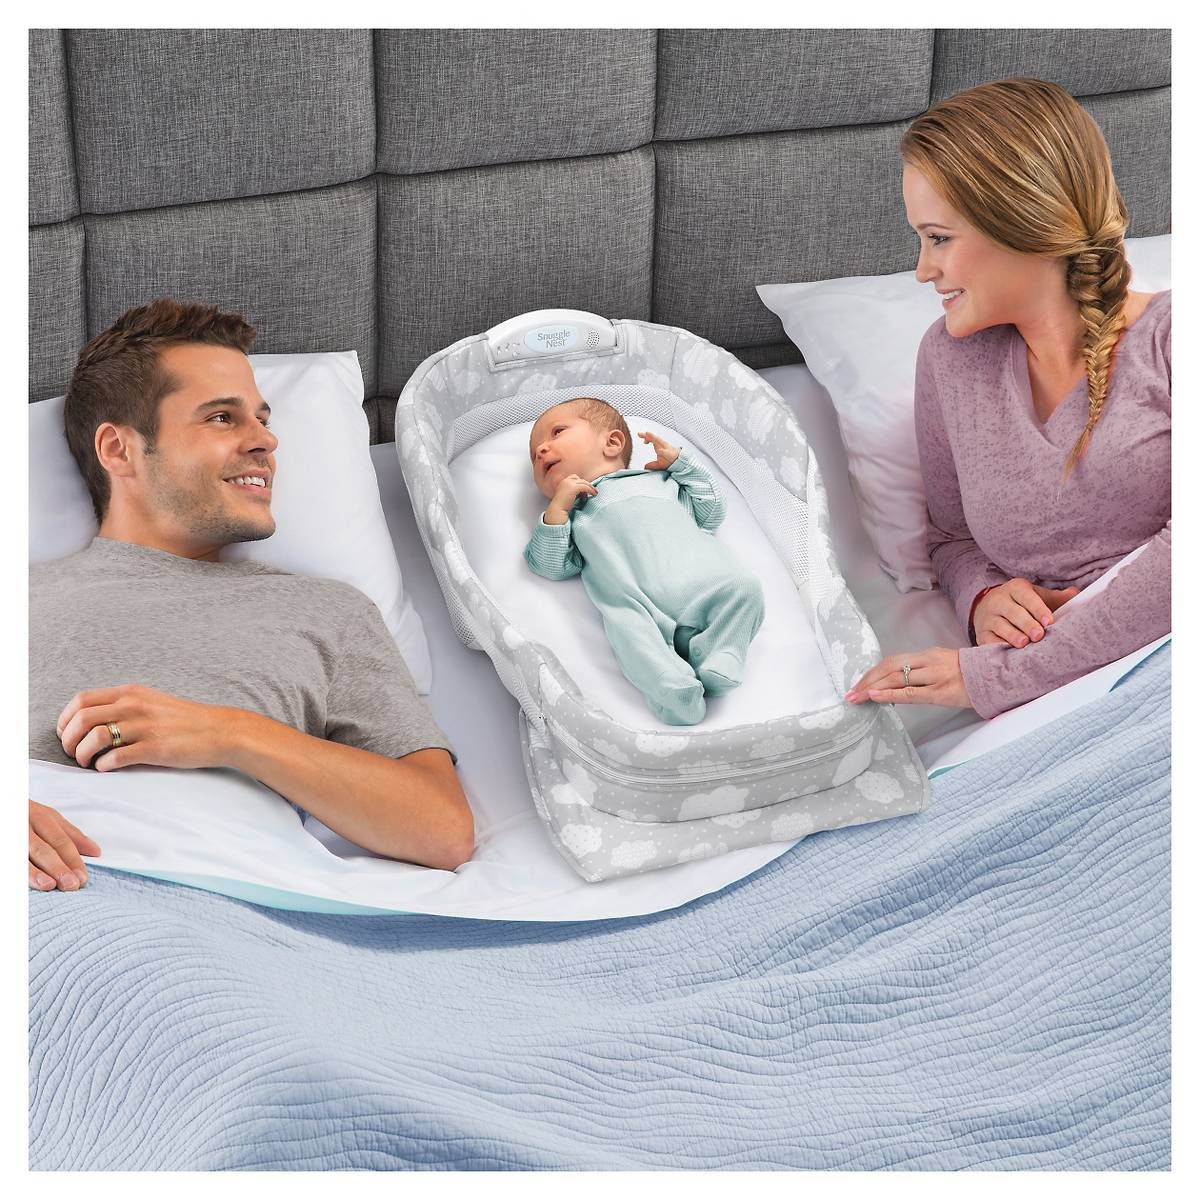 Baby Delight Snuggle Nest Harmony Portable Infant Sleeper